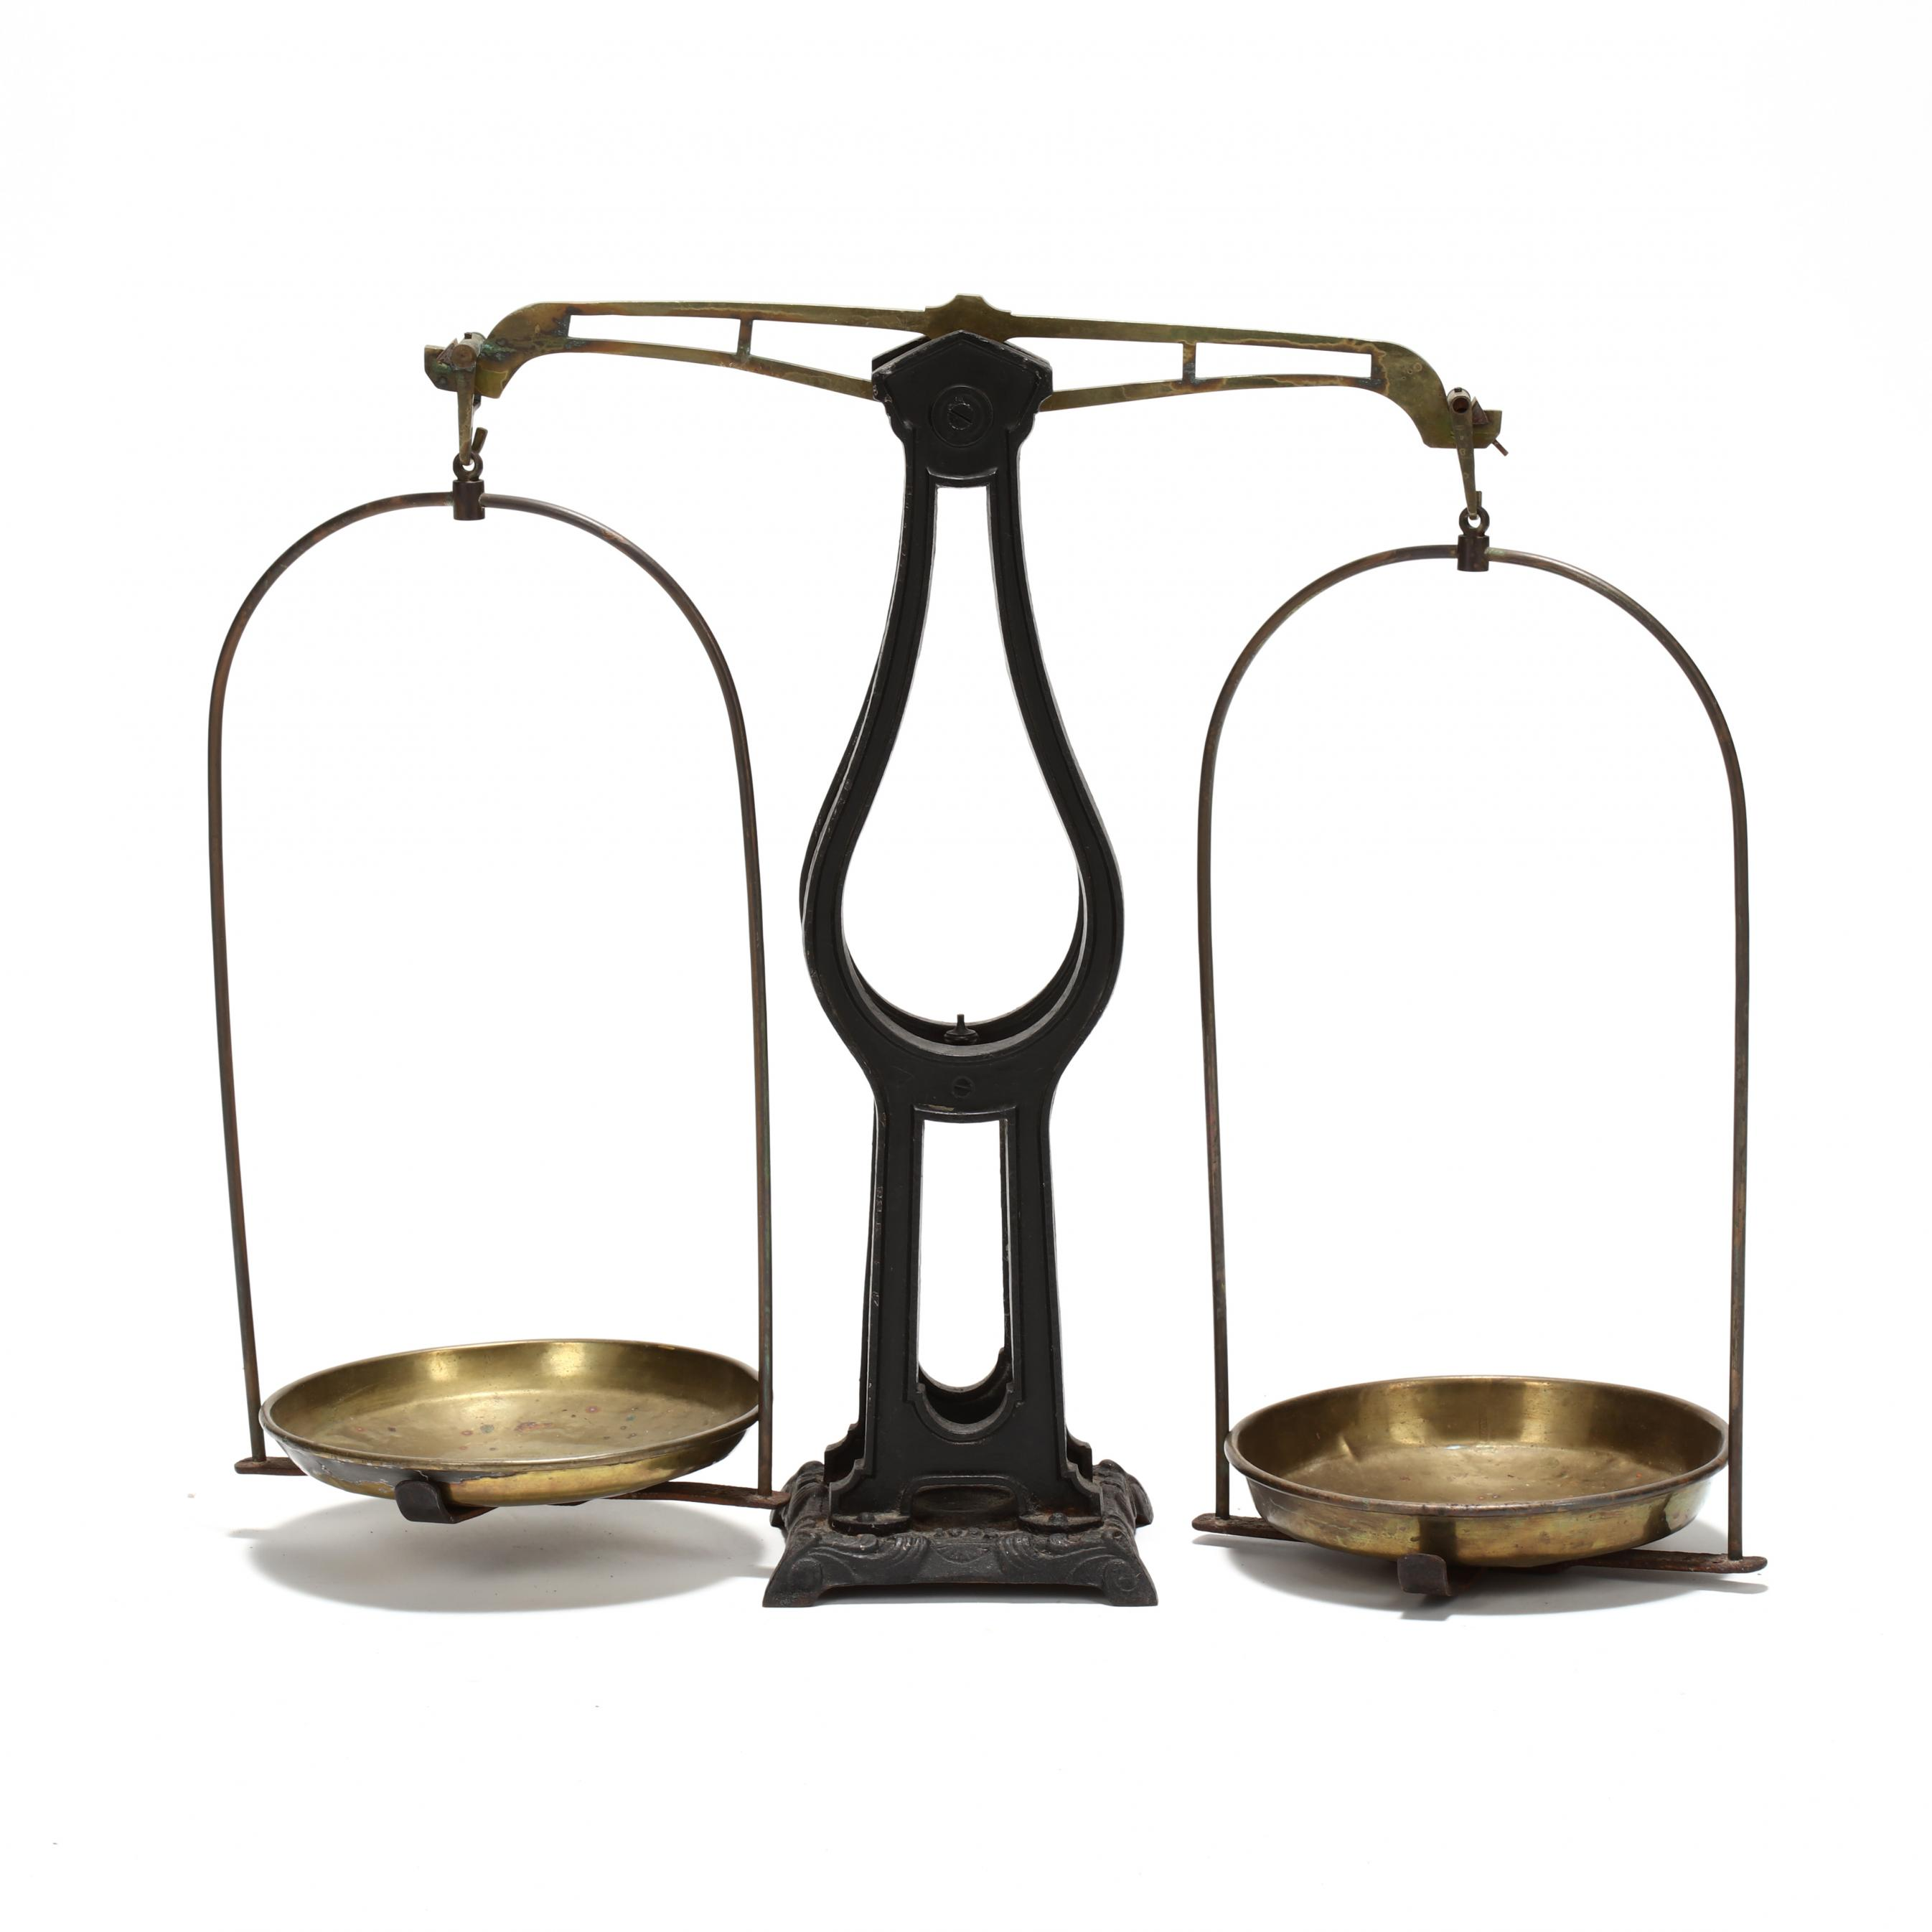 antique-iron-and-brass-balance-scale